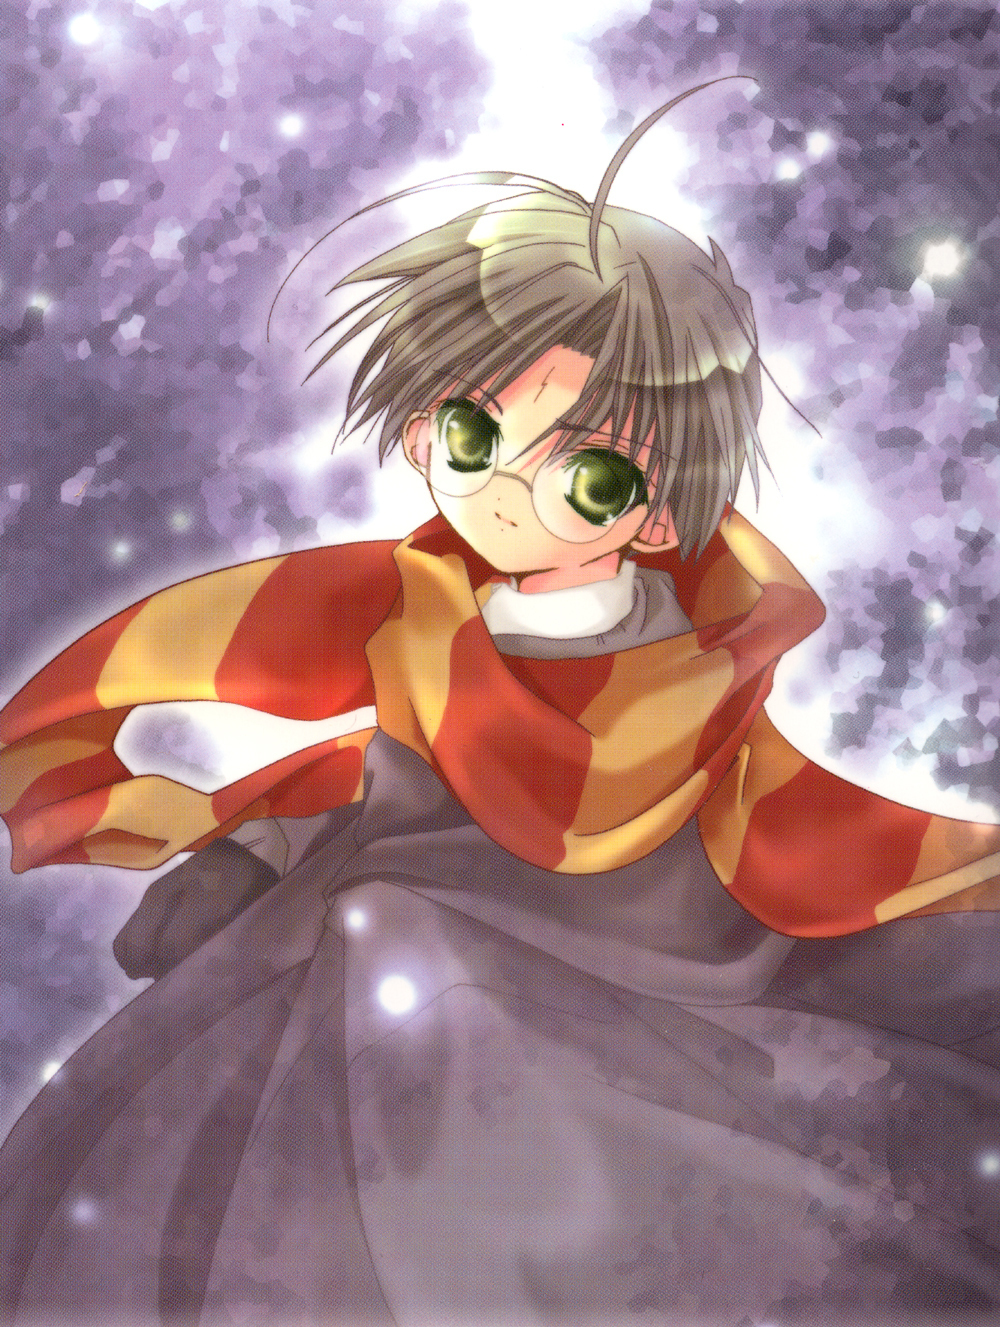 funkyrach01 image Harry Potter [Anime] HD wallpapers and backgrounds